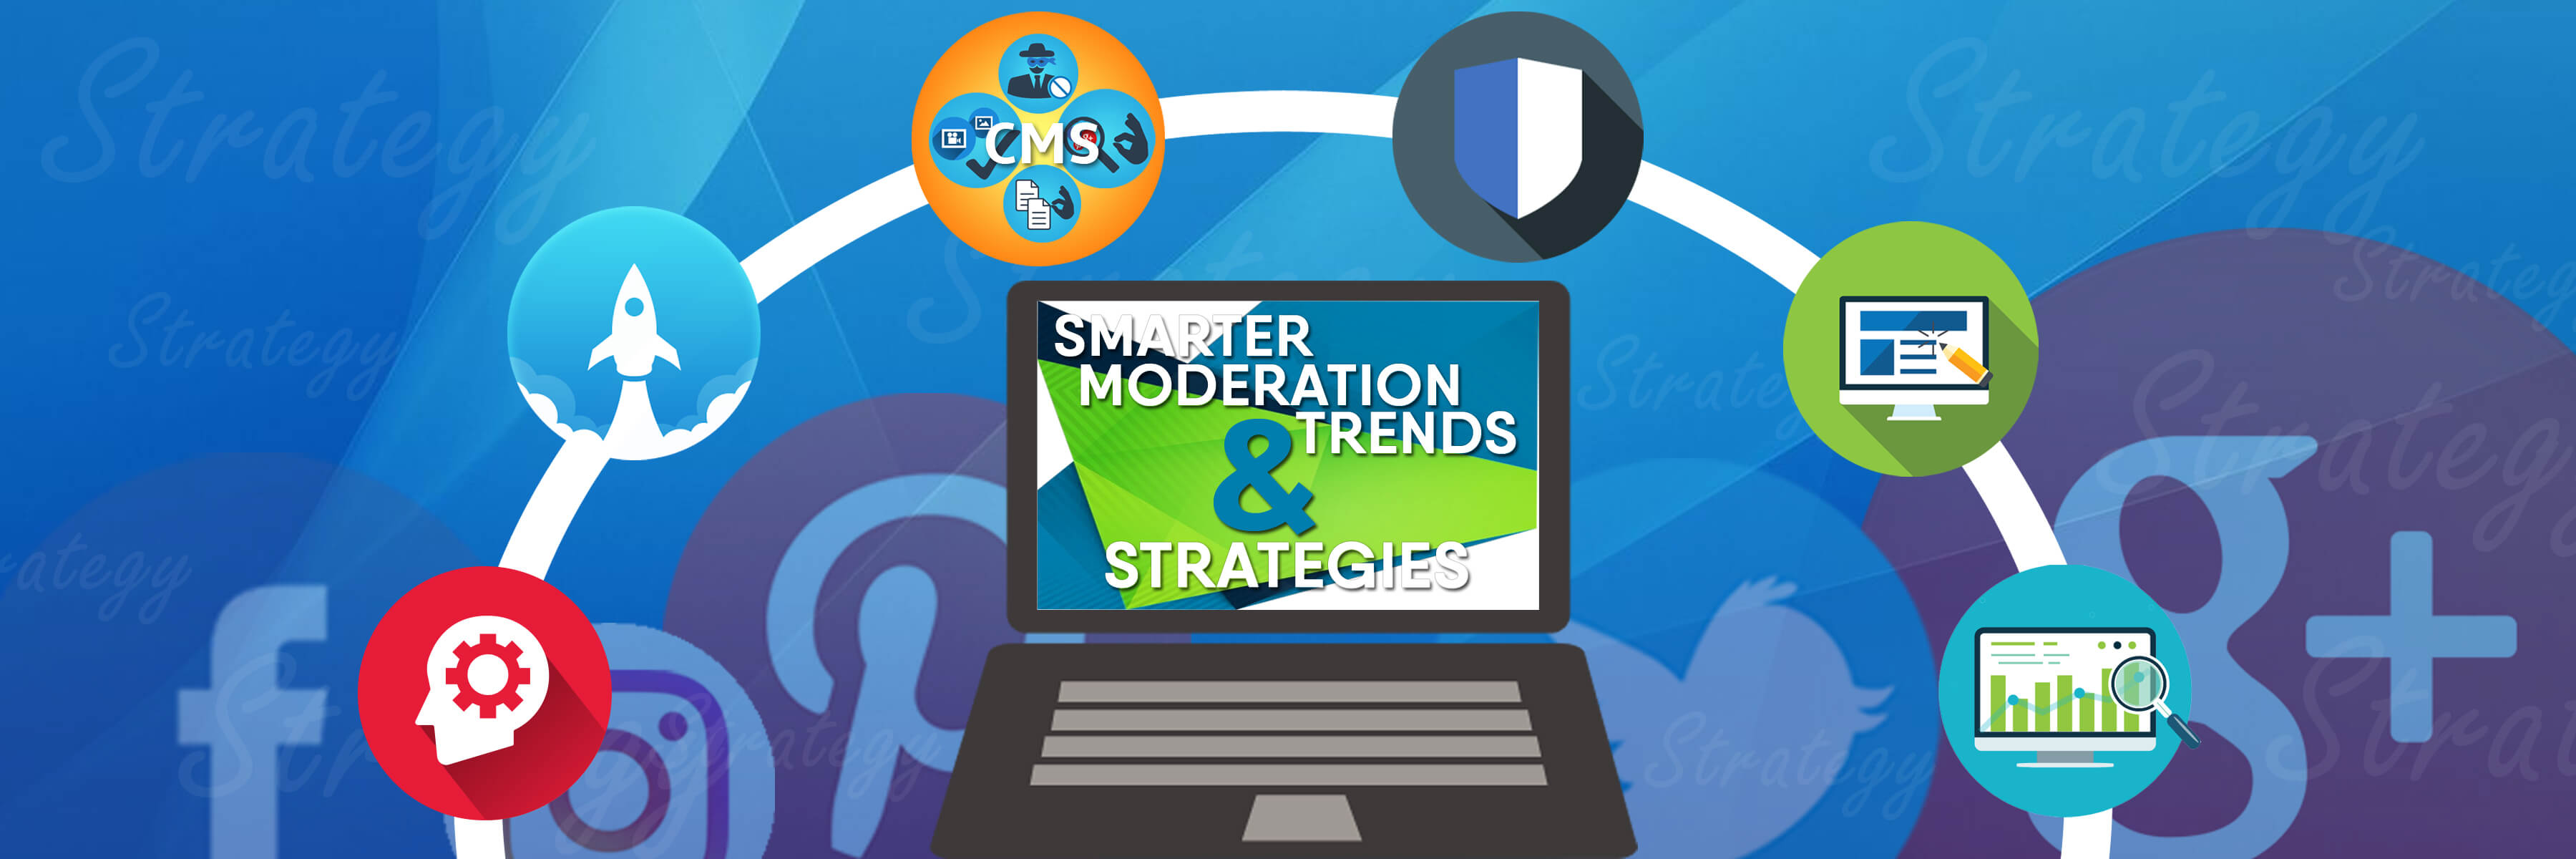 Moderation Trends and Strategies banner with social media icons